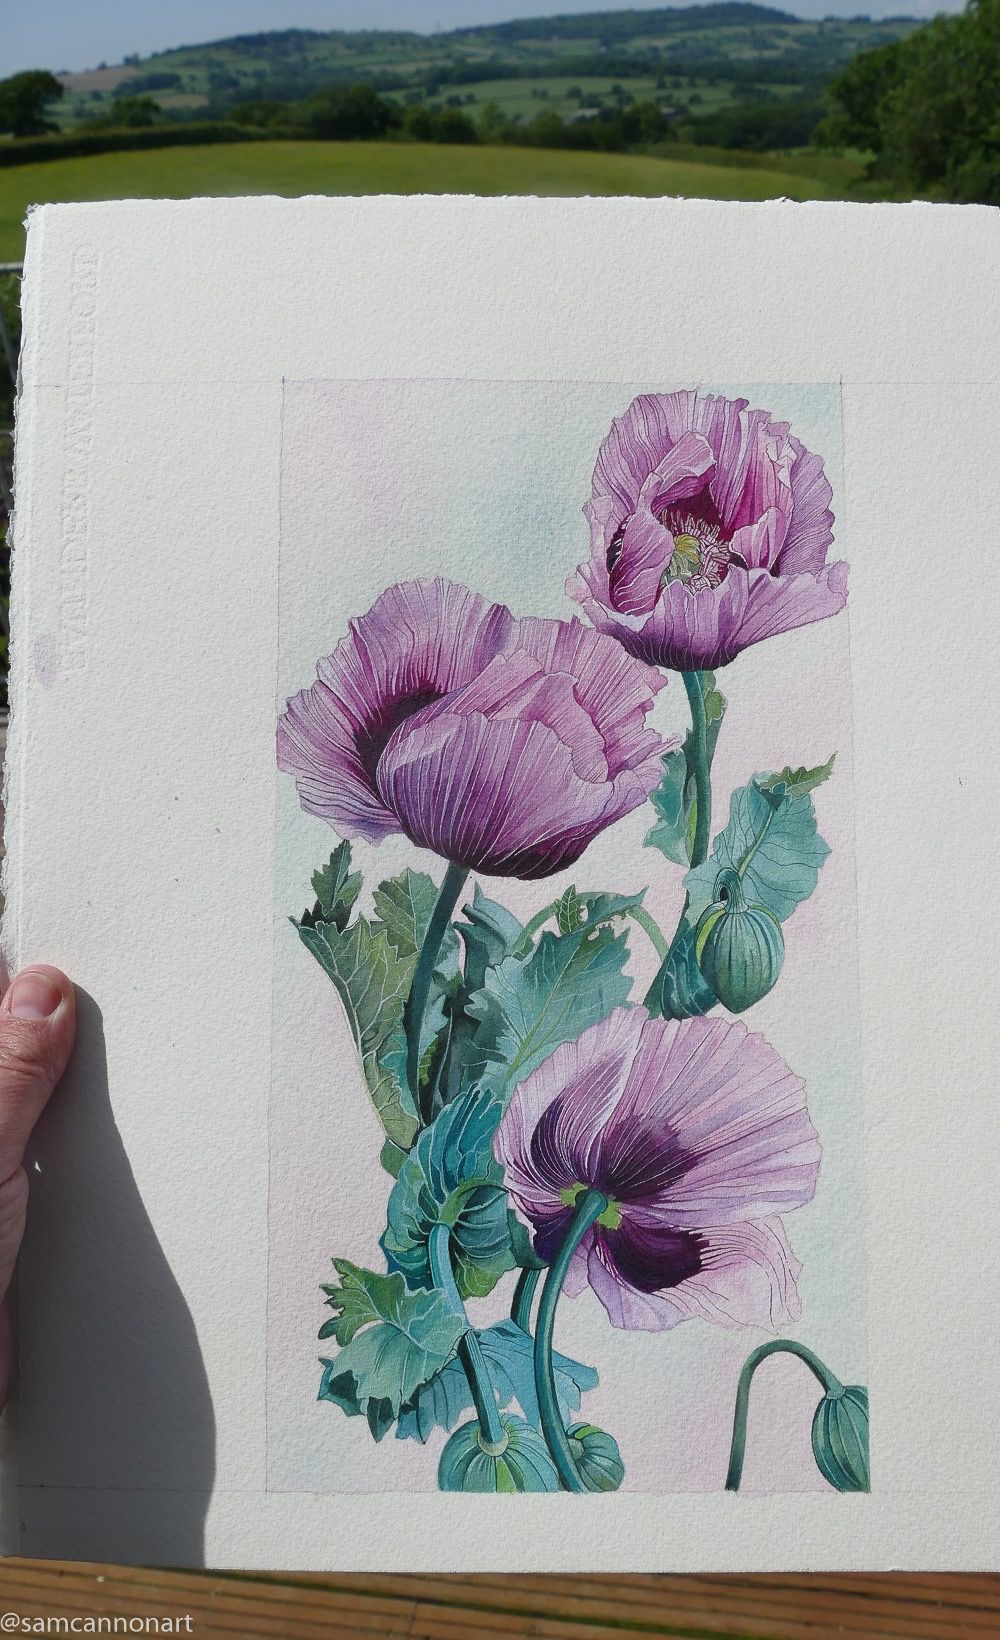 Poppies - all finished. Watercolour on watercolour paper.